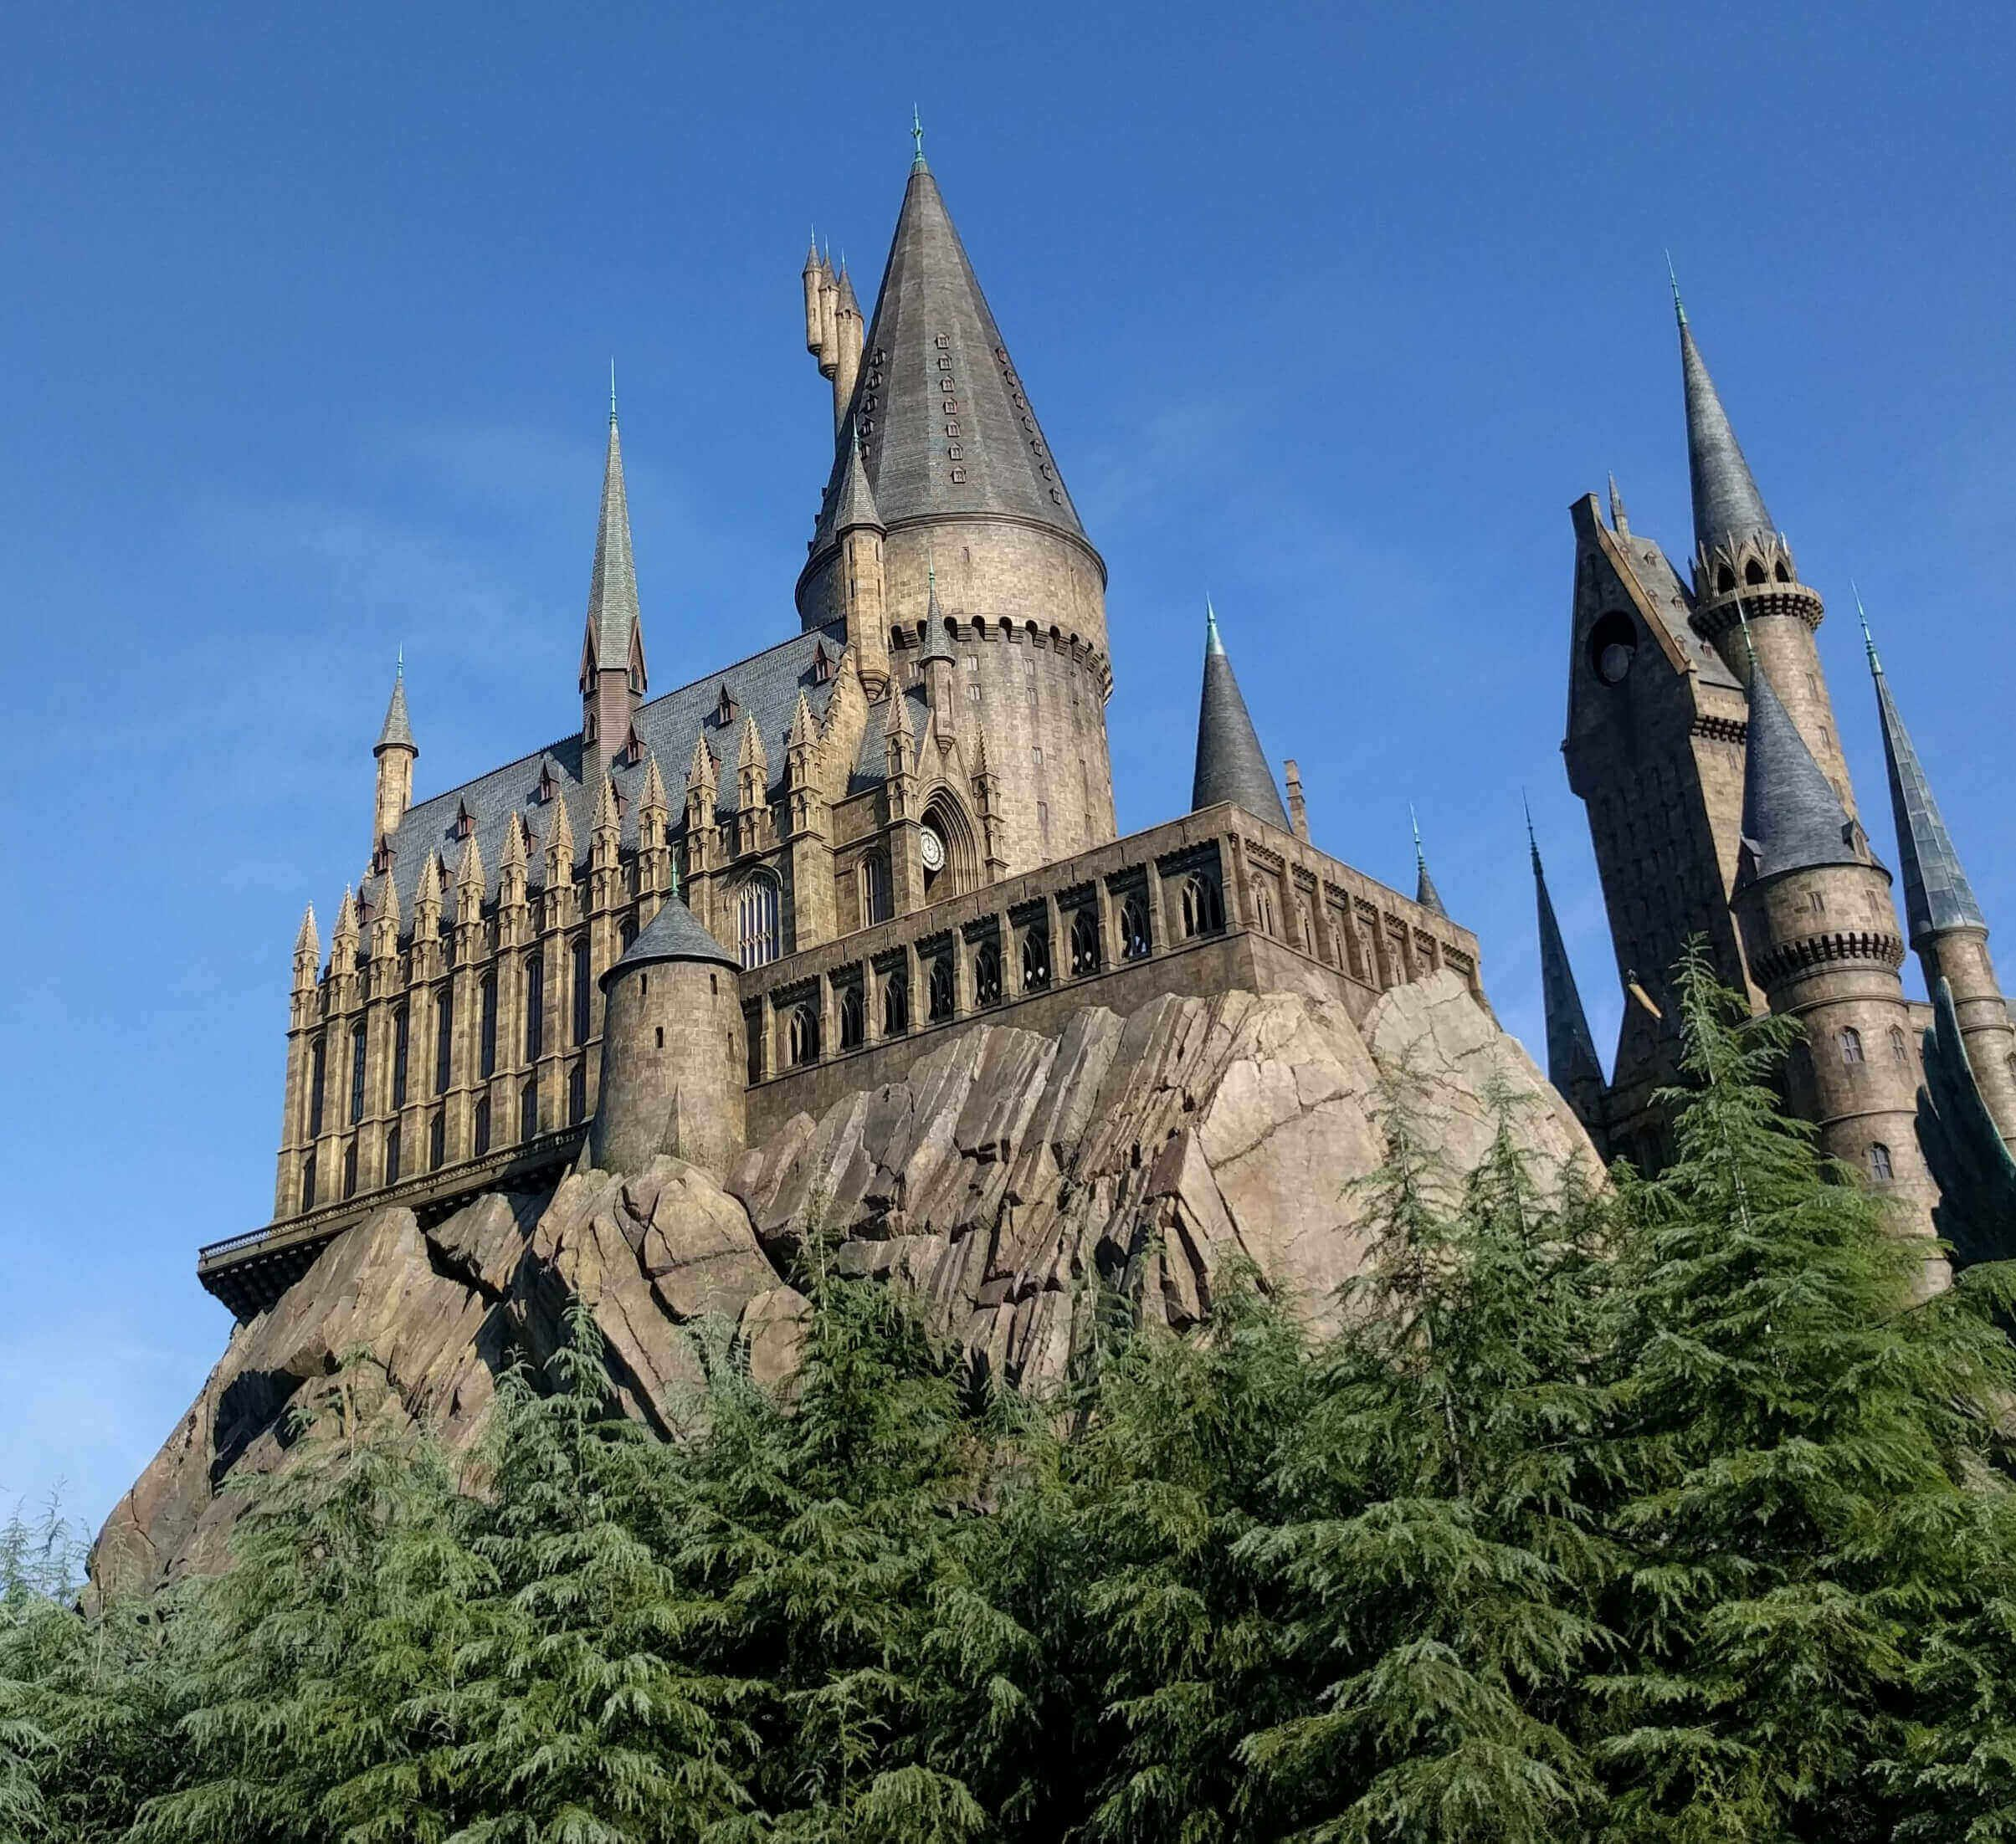 Hogwarts castle from bottom view